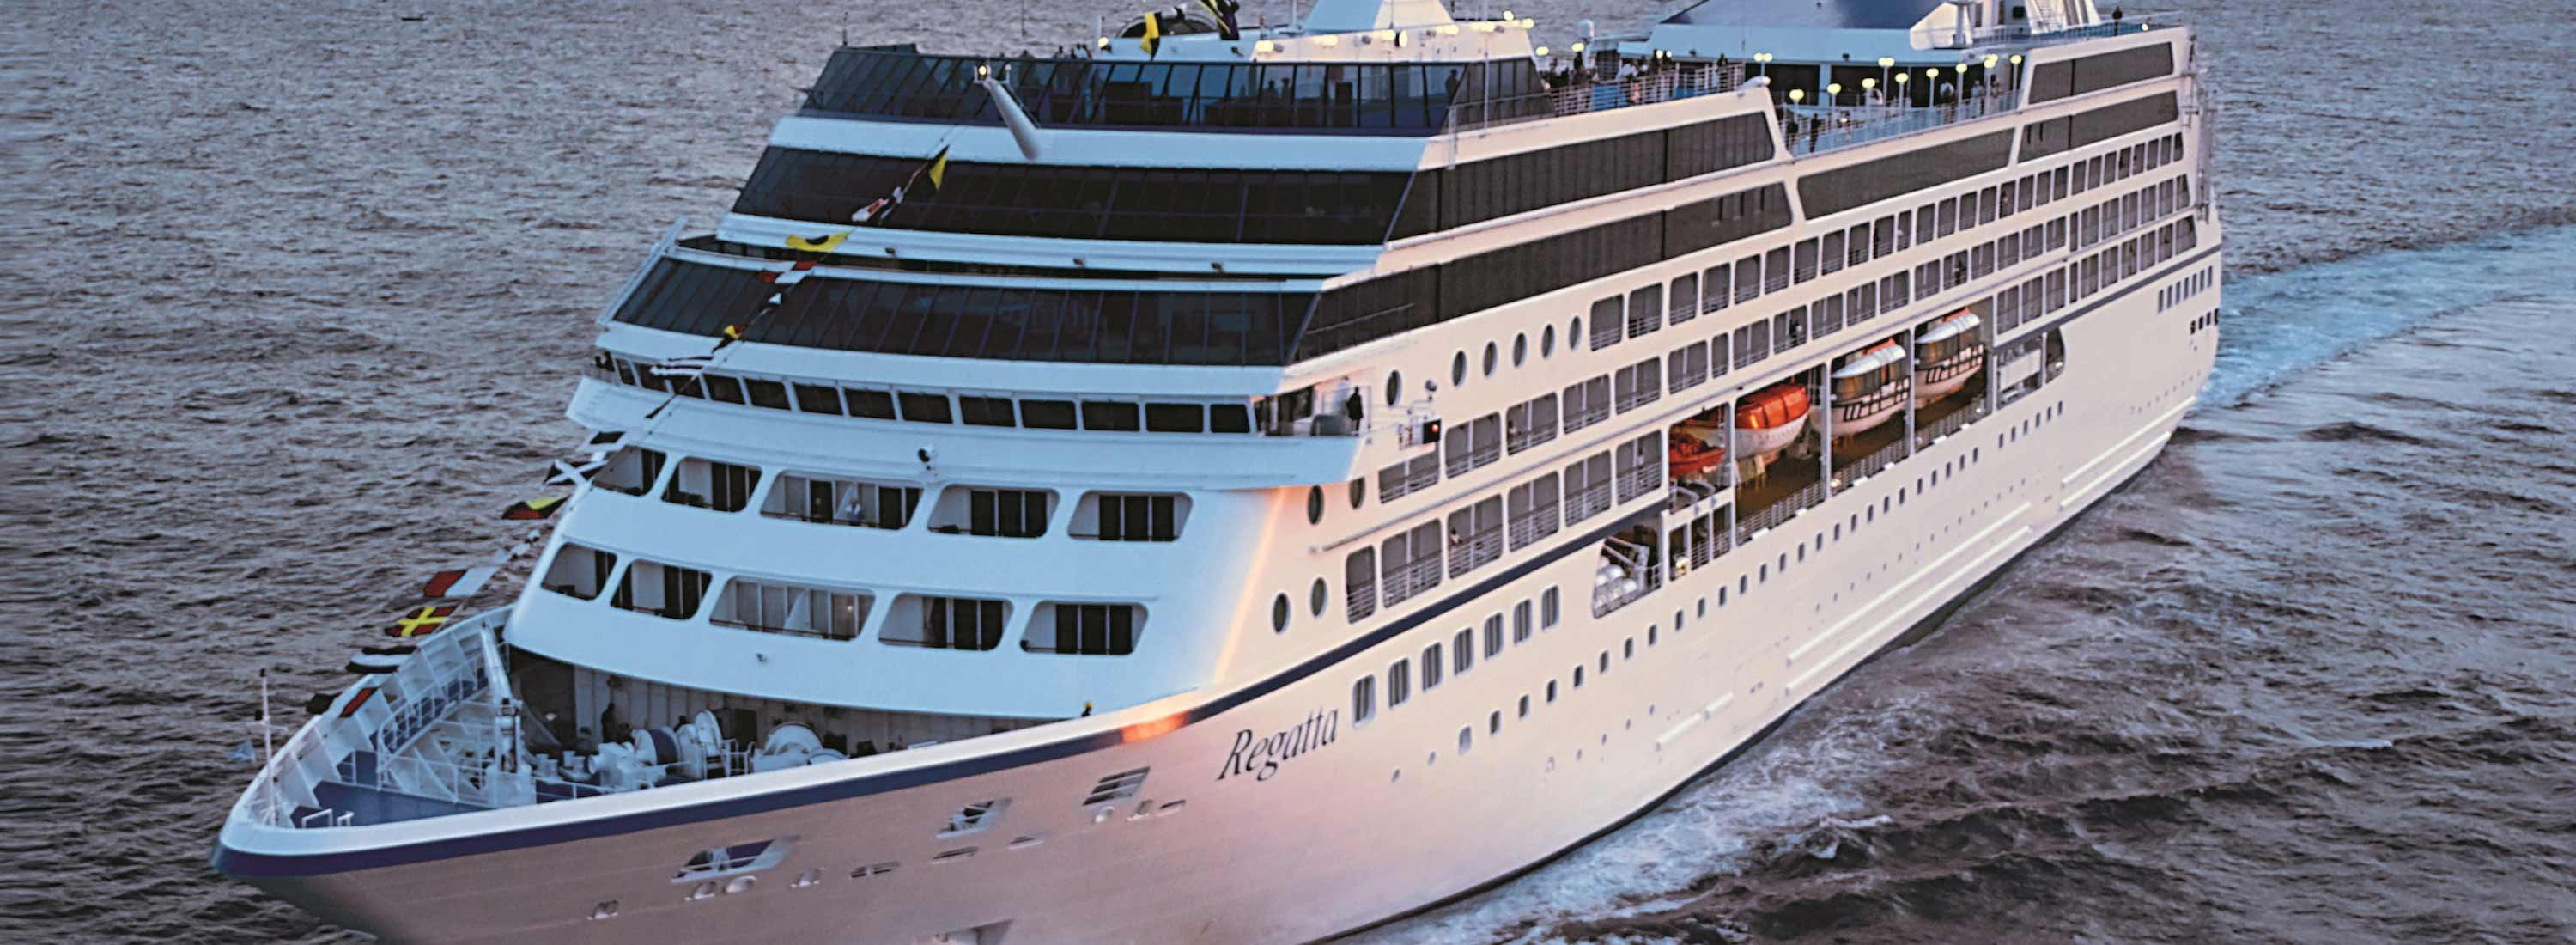 Luxury Cruise Connections - Oceania Cruises